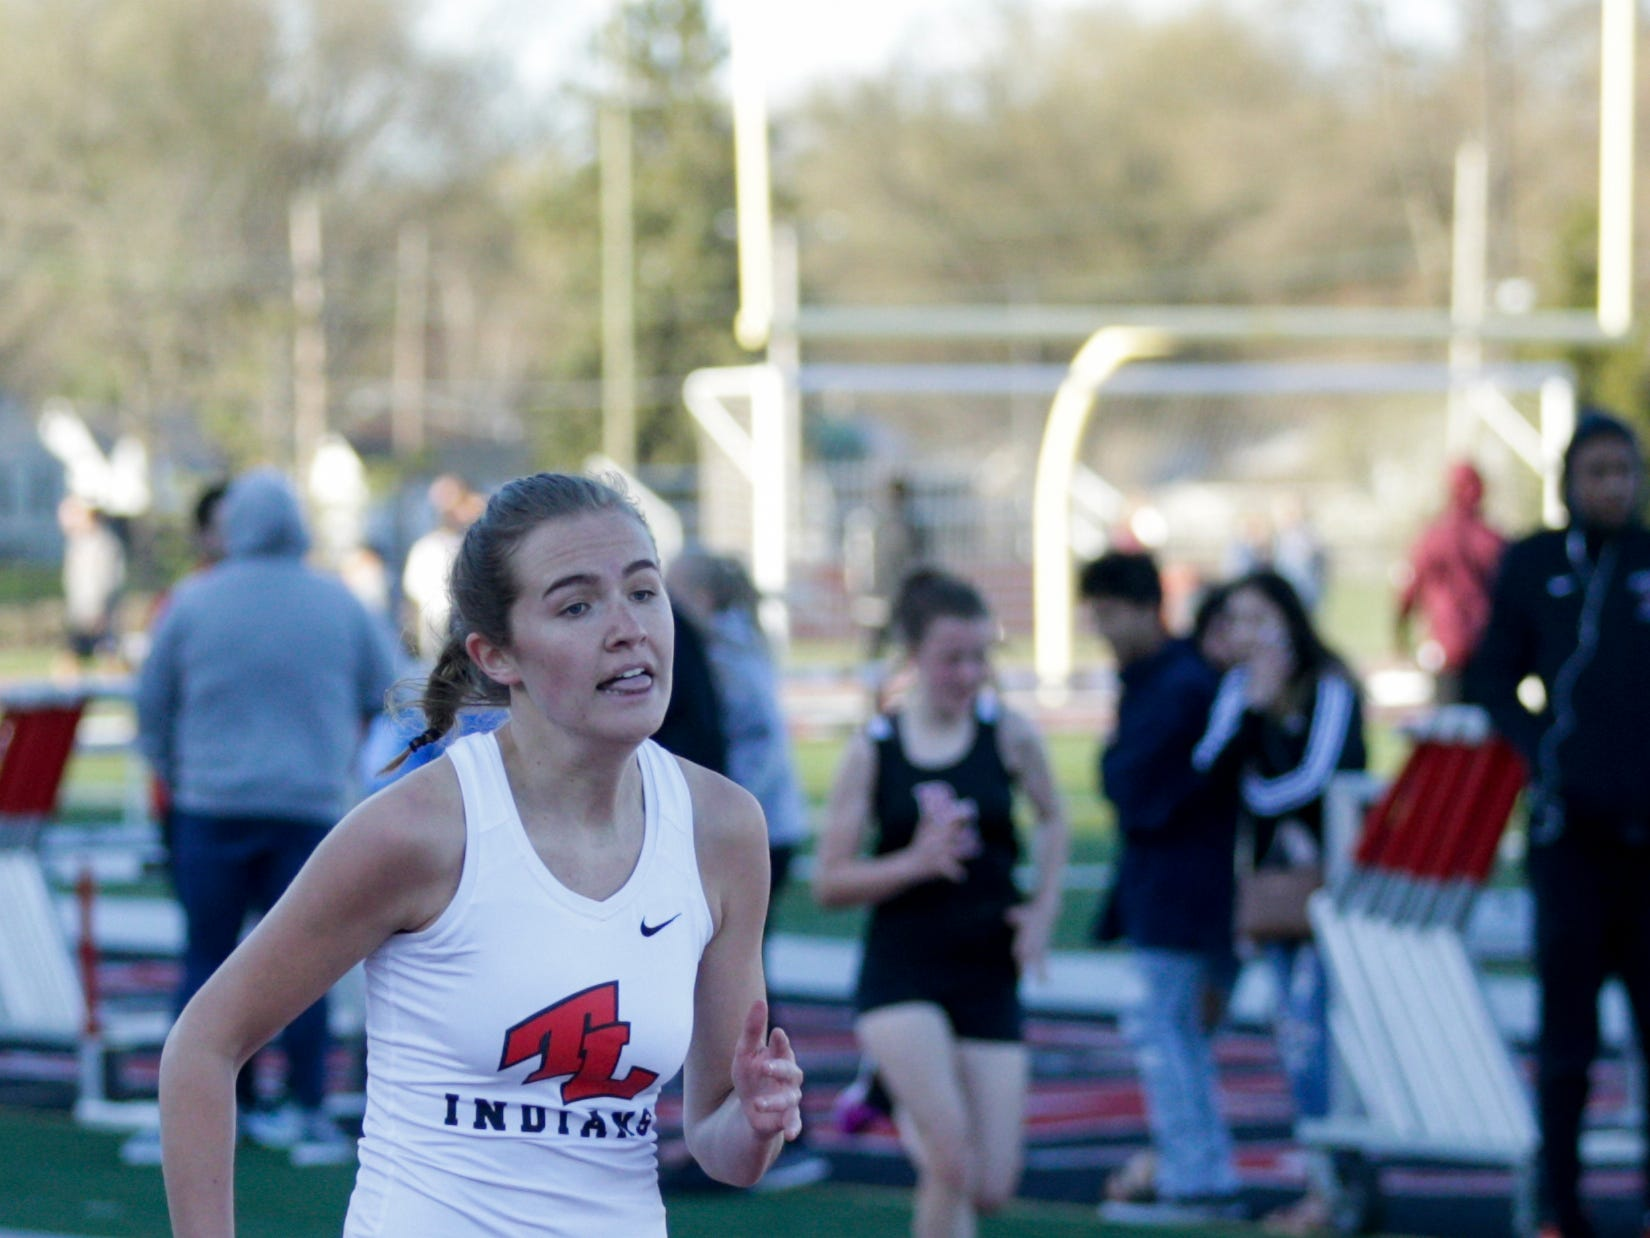 Twin Lake's Sarah Ryan competes in the women's 200 meter dash during the 2019 Sprinters Showcase, Friday, April 12, 2019, at Lafayette Jeff High School in Lafayette.